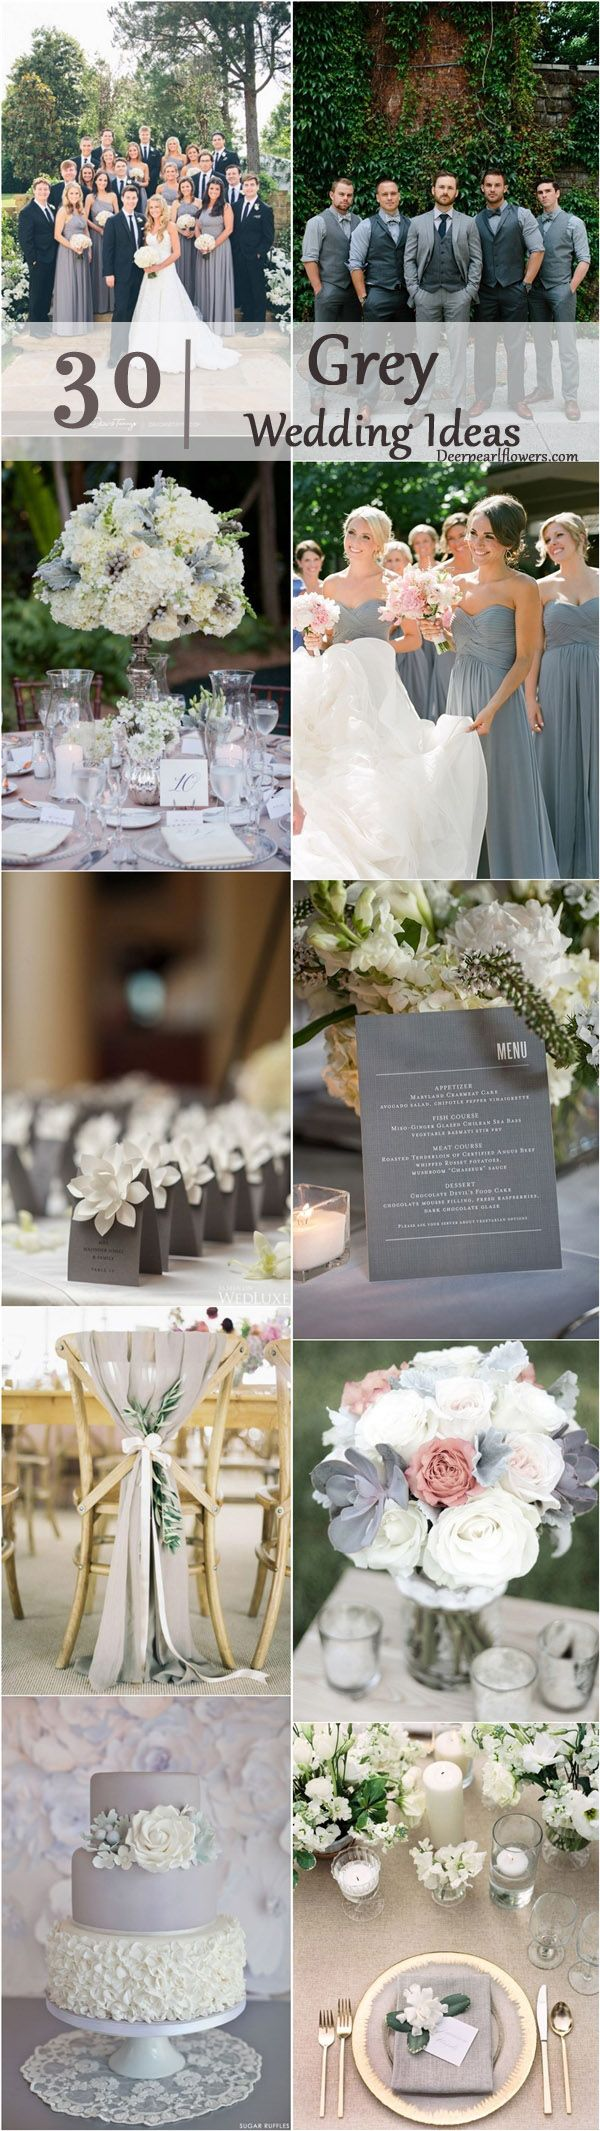 fall wedding ideas- grey wedding color ideas…